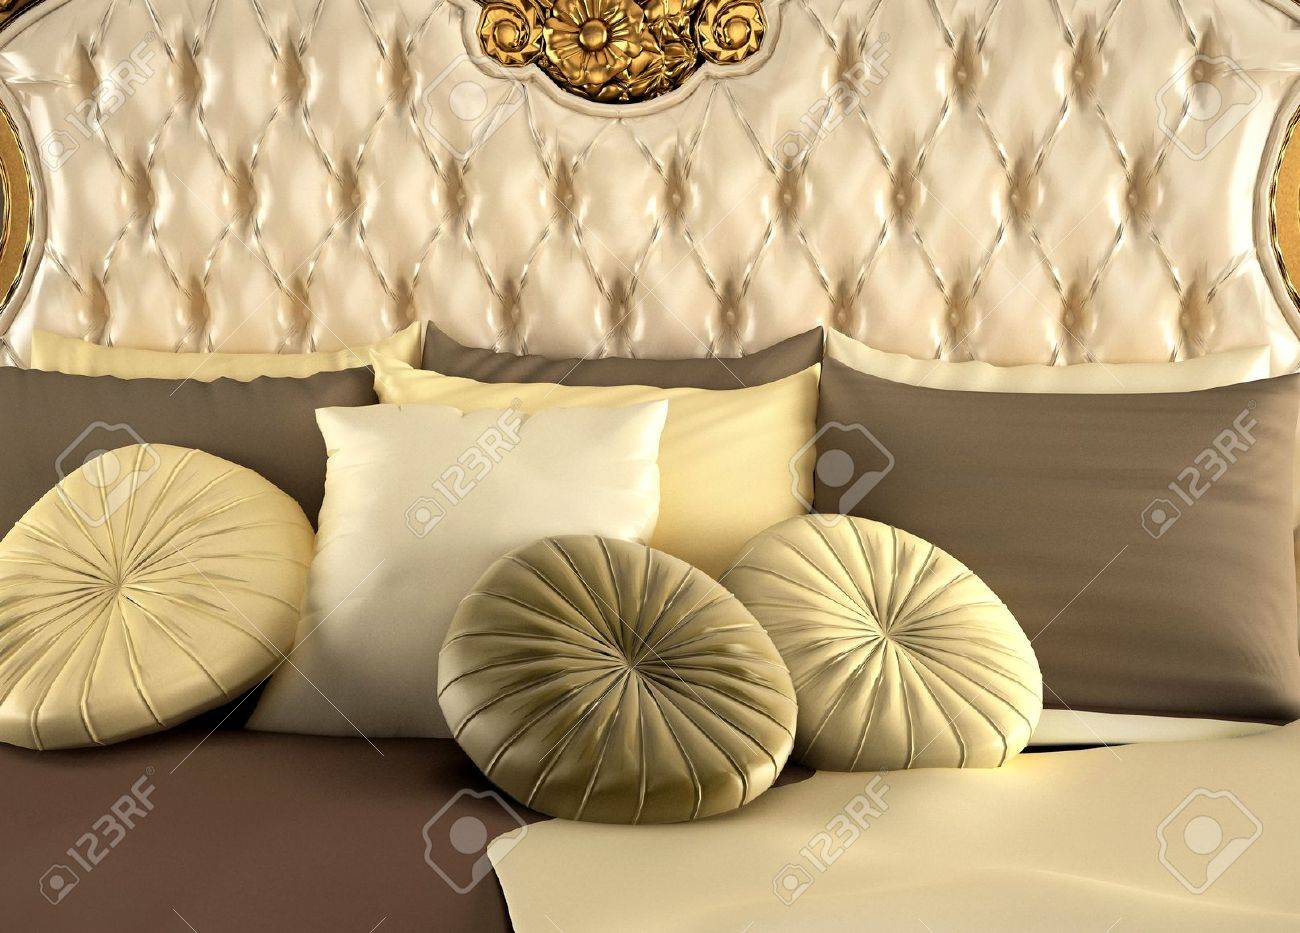 Deluxe back of bed and pillows. Royal and luxurious bedroom Stock Photo - 10511897